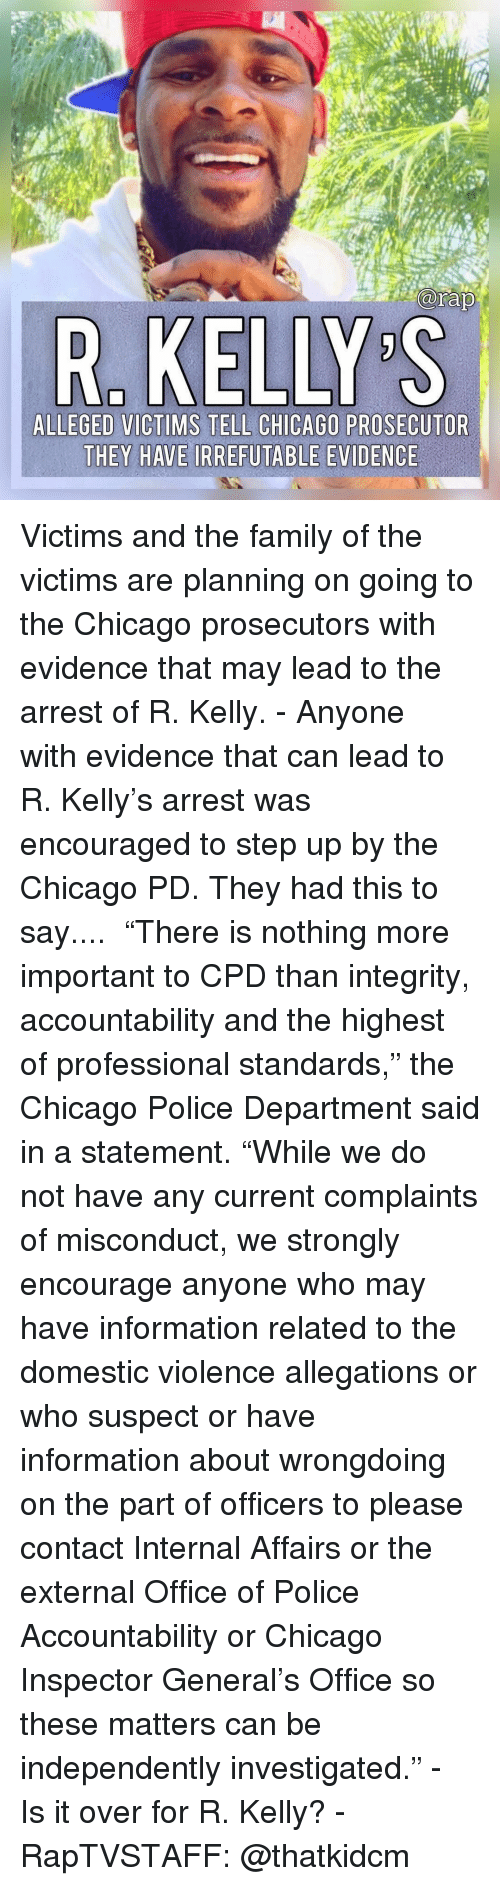 "R. Kelly: R. KELLY S  ALLEGED VICTIMS TELL CHICAGO PROSECUTOR  THEY HAVE IRREFUTABLE EVIDENCE Victims and the family of the victims are planning on going to the Chicago prosecutors with evidence that may lead to the arrest of R. Kelly.⁣ -⁣ Anyone with evidence that can lead to R. Kelly's arrest was encouraged to step up by the Chicago PD. They had this to say....⁣ ⁣ ""There is nothing more important to CPD than integrity, accountability and the highest of professional standards,"" the Chicago Police Department said in a statement. ""While we do not have any current complaints of misconduct, we strongly encourage anyone who may have information related to the domestic violence allegations or who suspect or have information about wrongdoing on the part of officers to please contact Internal Affairs or the external Office of Police Accountability or Chicago Inspector General's Office so these matters can be independently investigated.""⁣ -⁣ Is it over for R. Kelly?⁣ -⁣ RapTVSTAFF: @thatkidcm⁣"